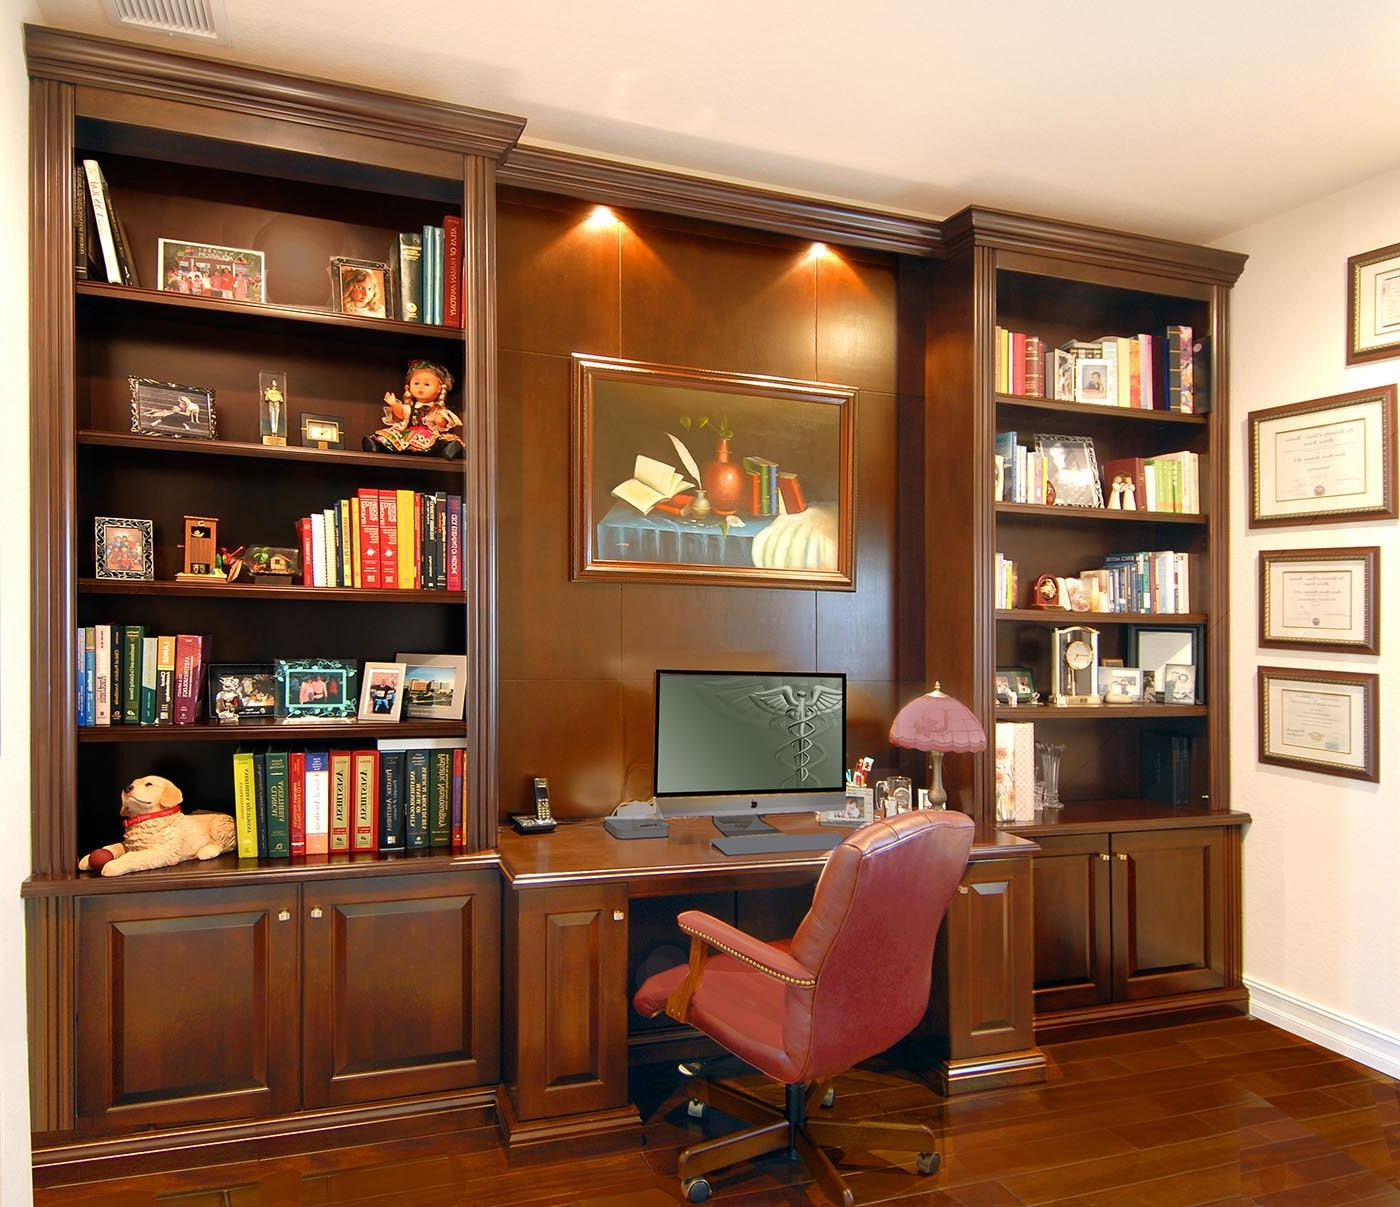 Widely Used Full Wall Bookcases Inside Bookshelf Cabinet Wall Unit Full Wall Bookshelves Diy High (View 15 of 15)